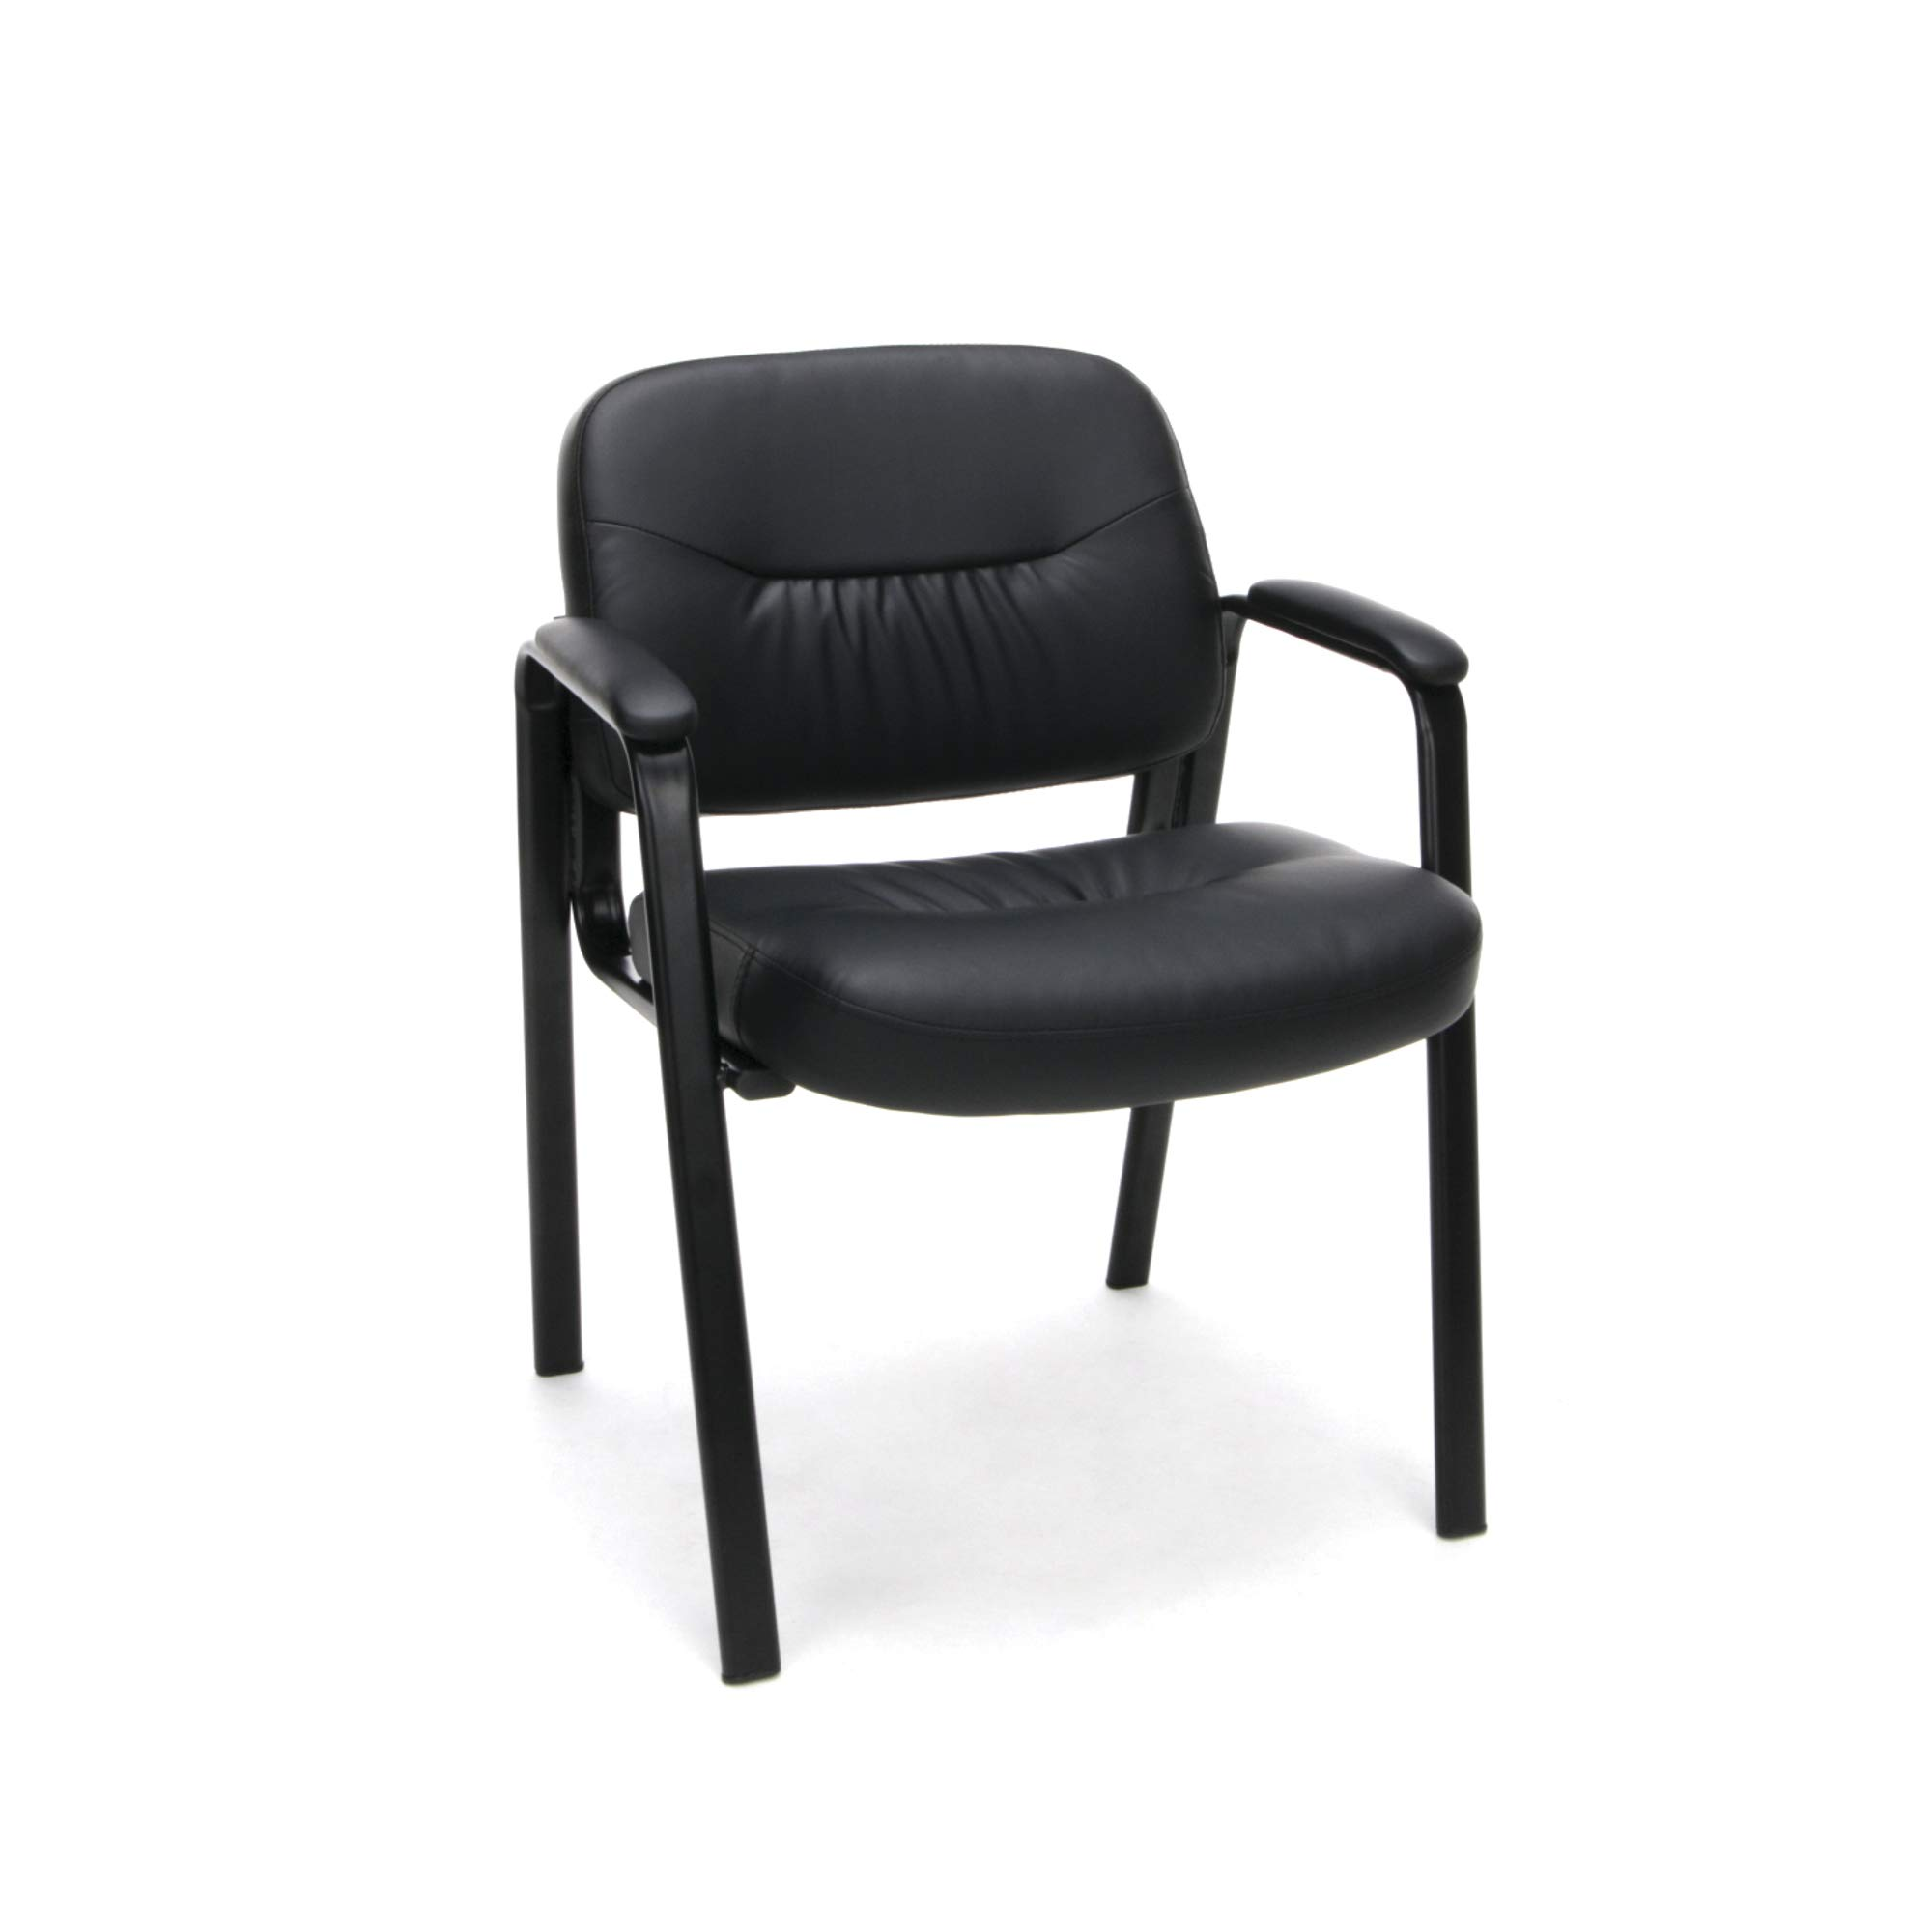 Essentials Leather Executive Side Chair - Guest/Reception Chair, Black (ESS-9010) by OFM